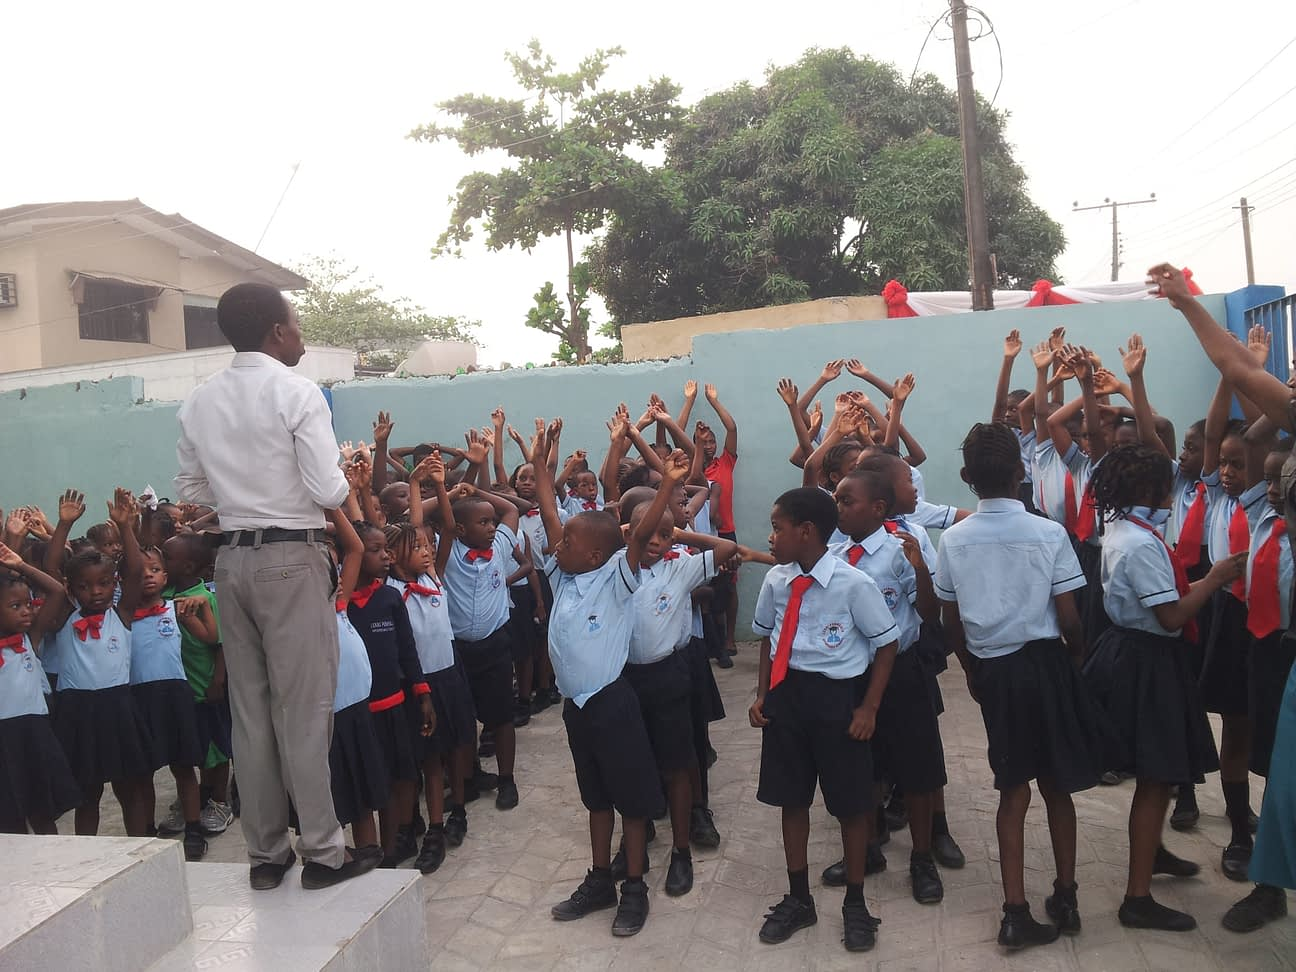 Students at the Lekki School lined up for an assembly.